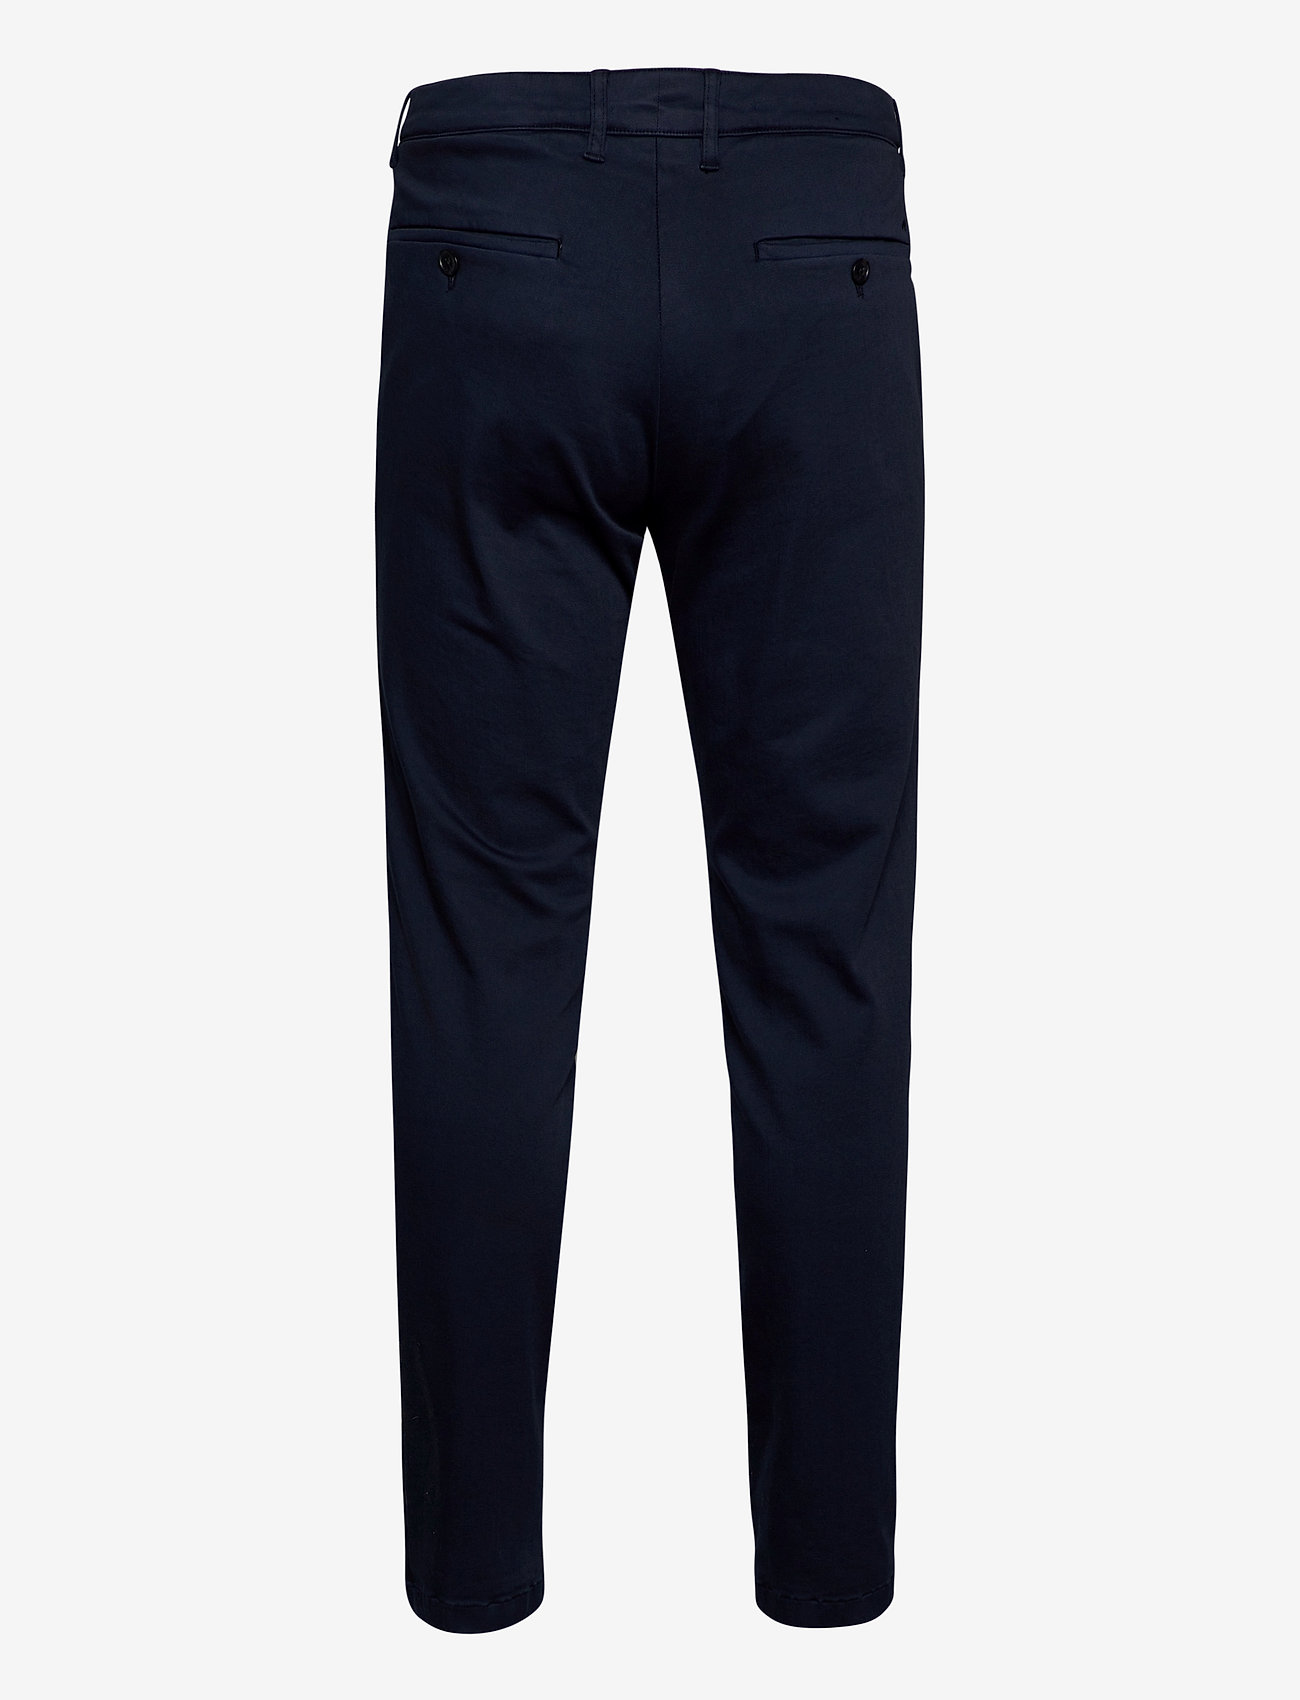 J. Lindeberg Chaze High Stretch Pants - Bukser JL NAVY - Menn Klær